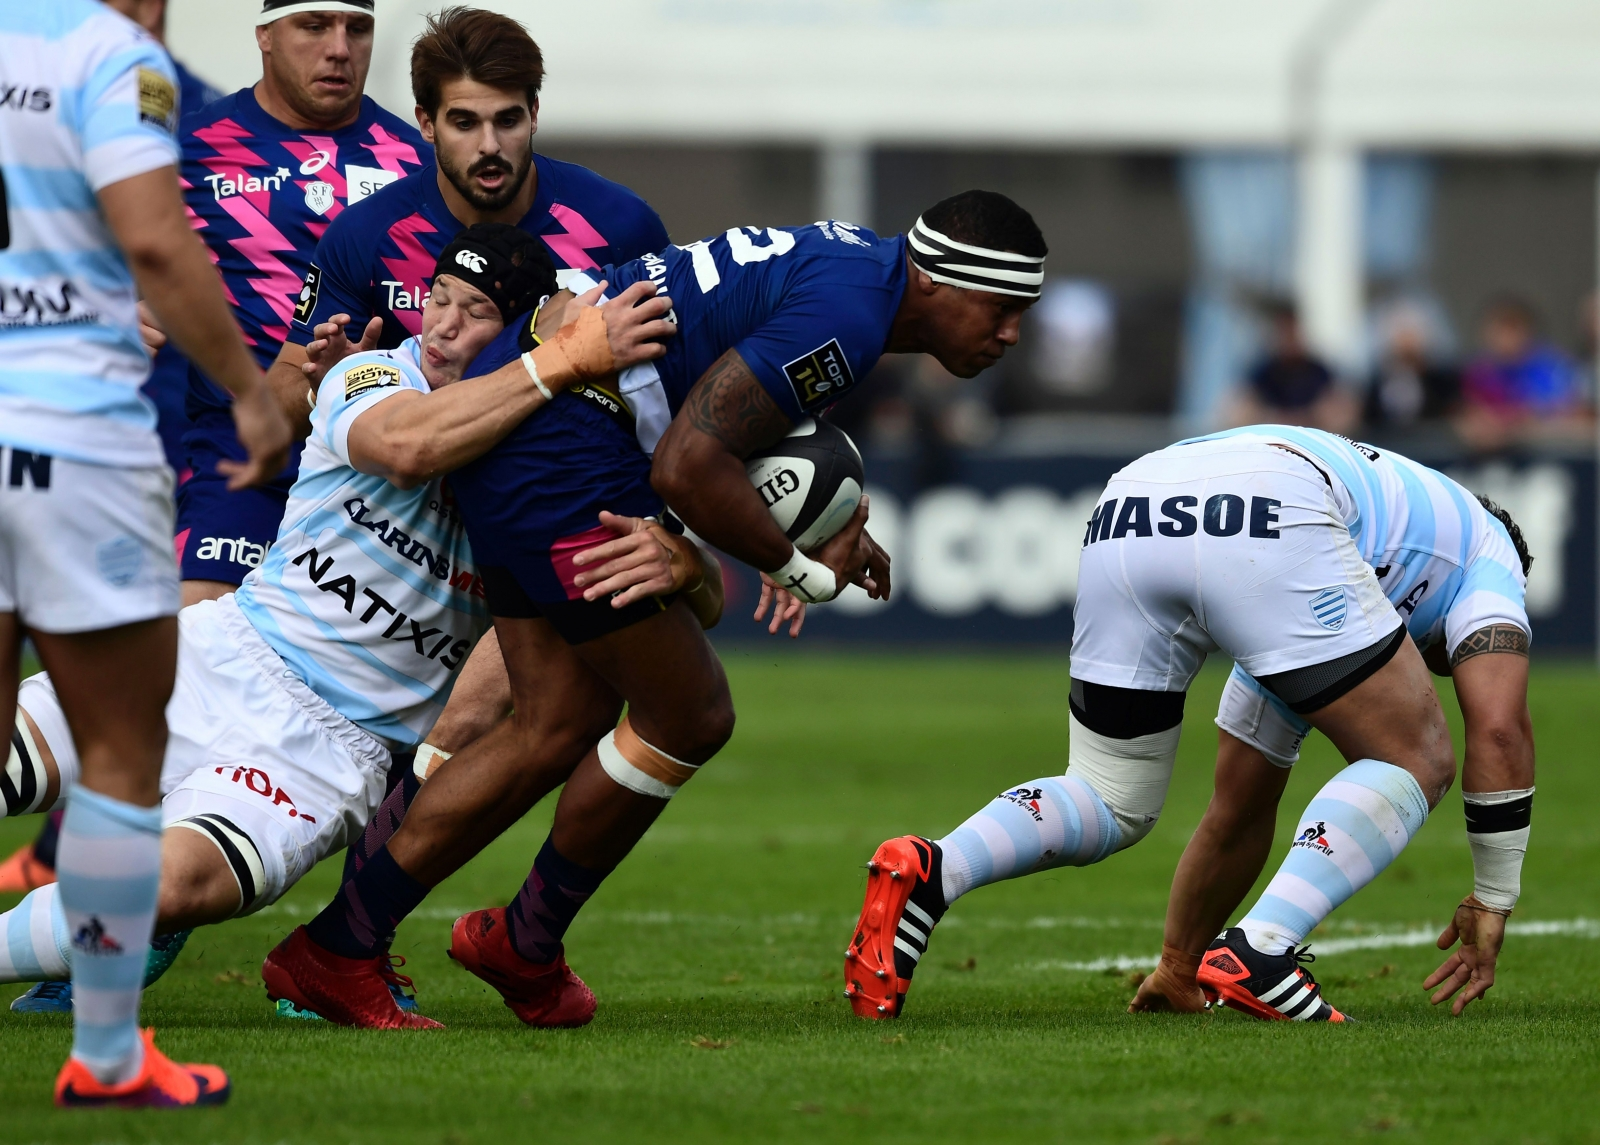 Stade Francais and Racing 92